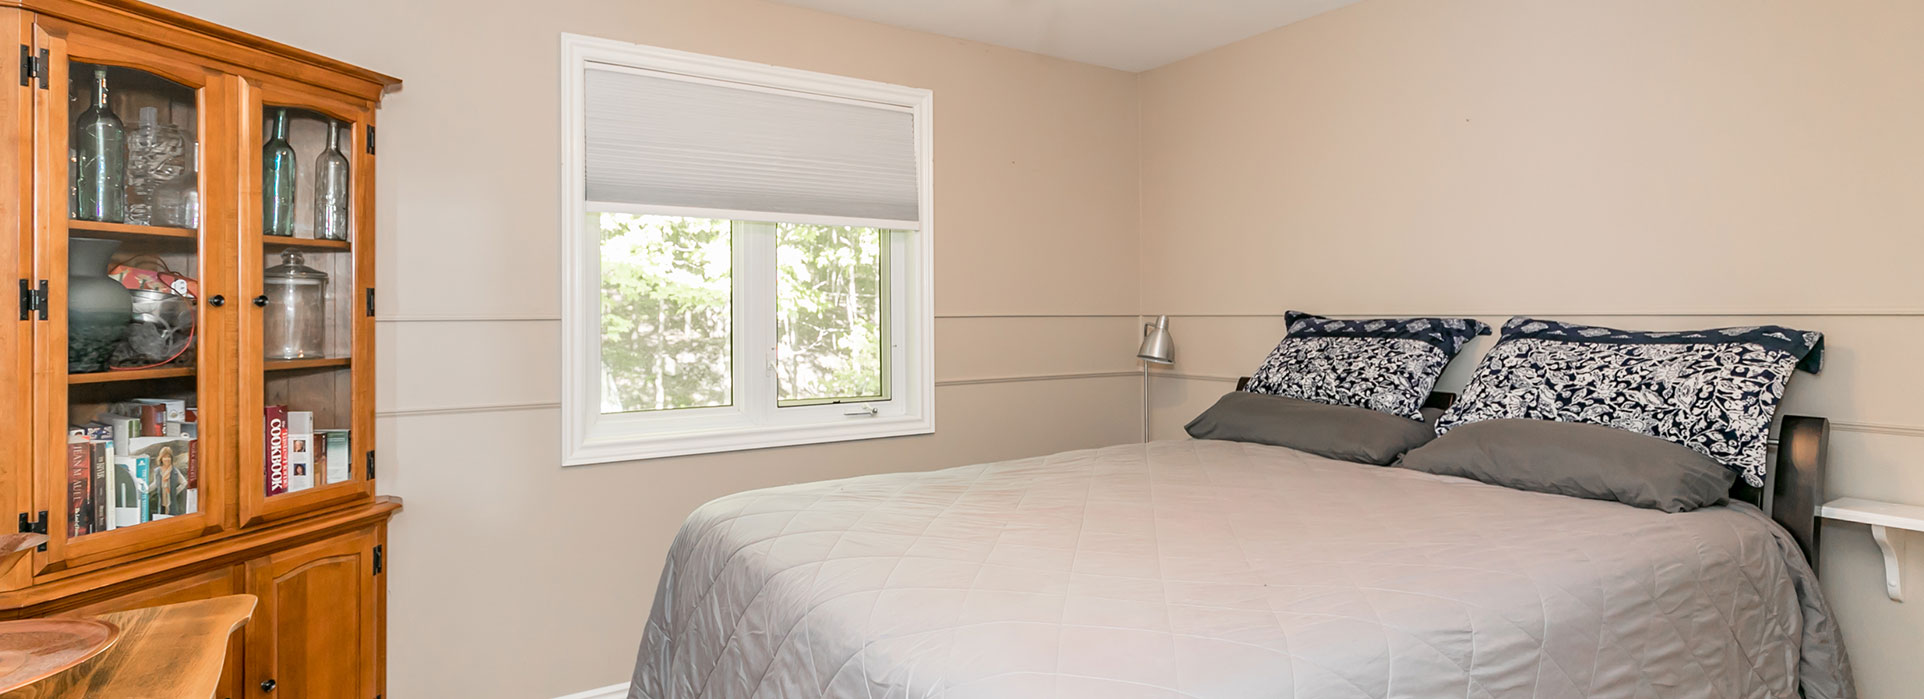 185 Darby Road - Bedroom with Window - Cripps Realty